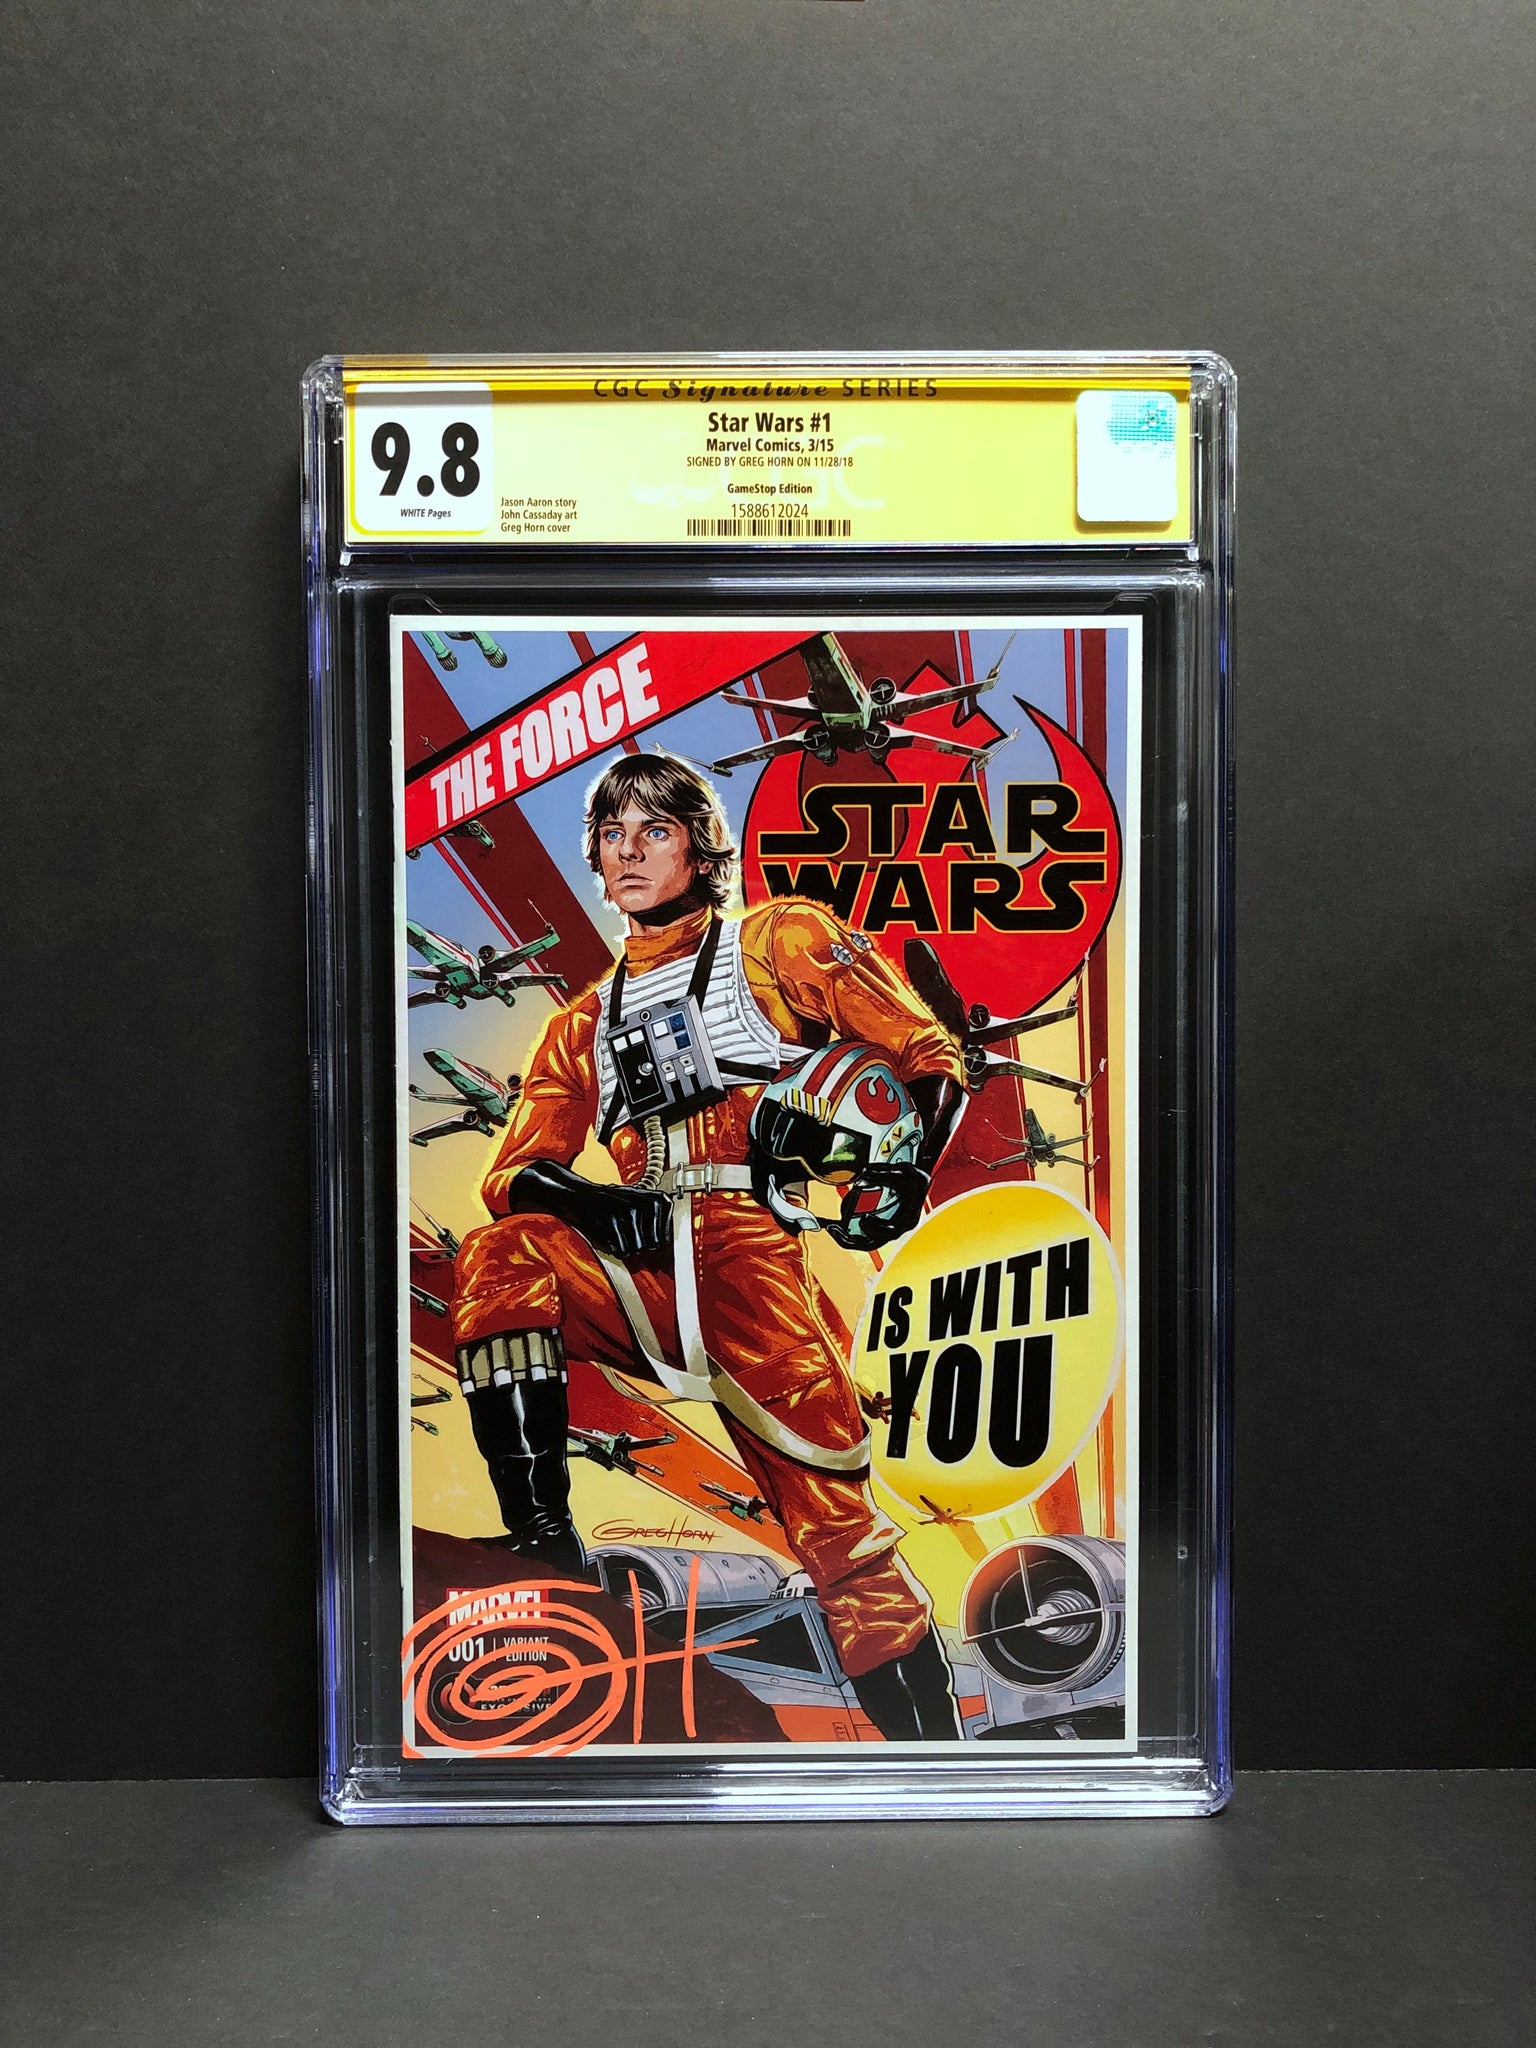 Star Wars # 1 GameStop Edition CGC 9.8 SS Signed by Greg Horn